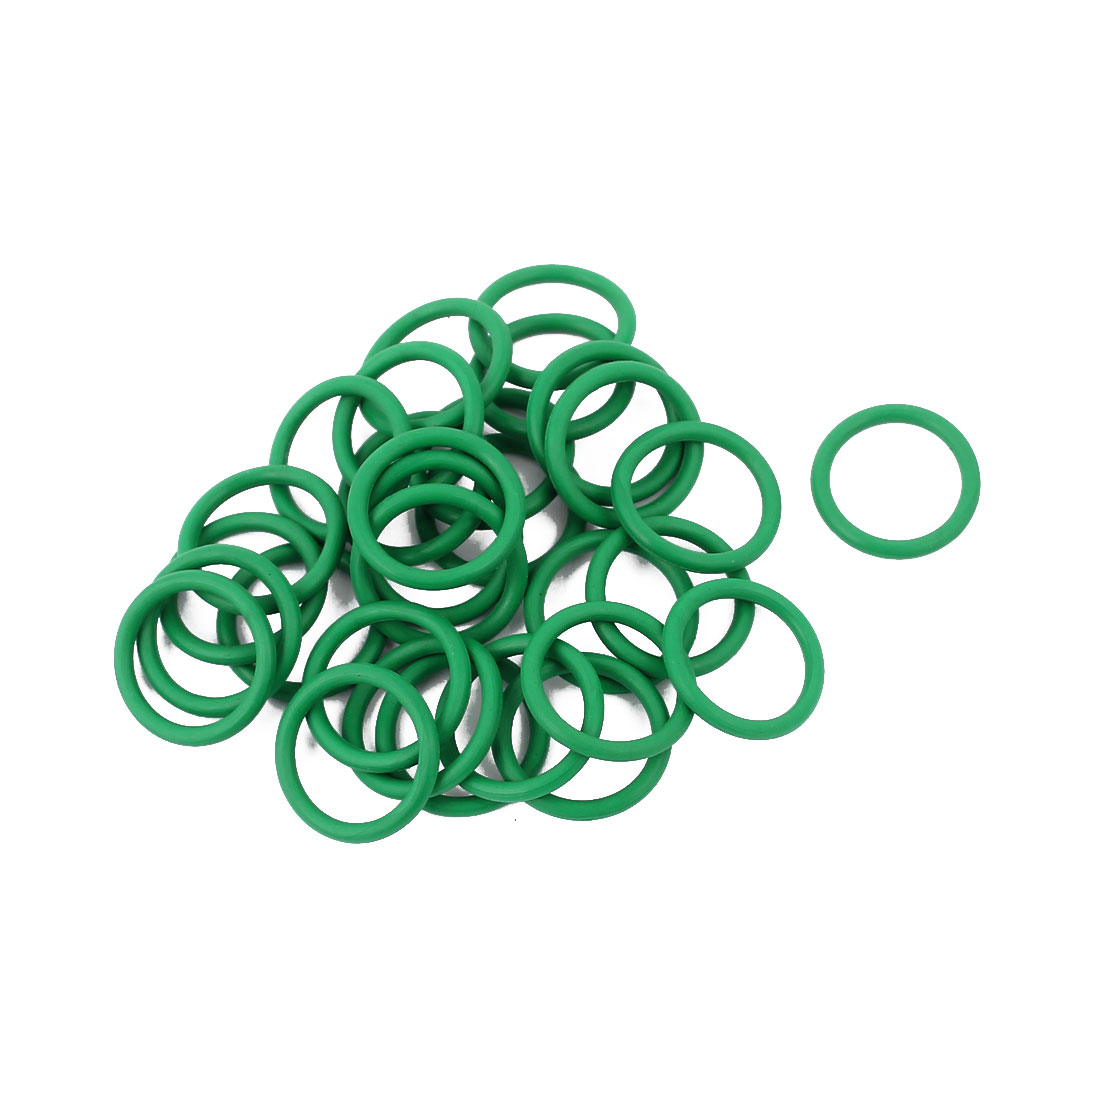 30pcs 1.5mm Thick Heat Resistant Mini Green O-Ring Rubber Sealing Ring 13mm OD